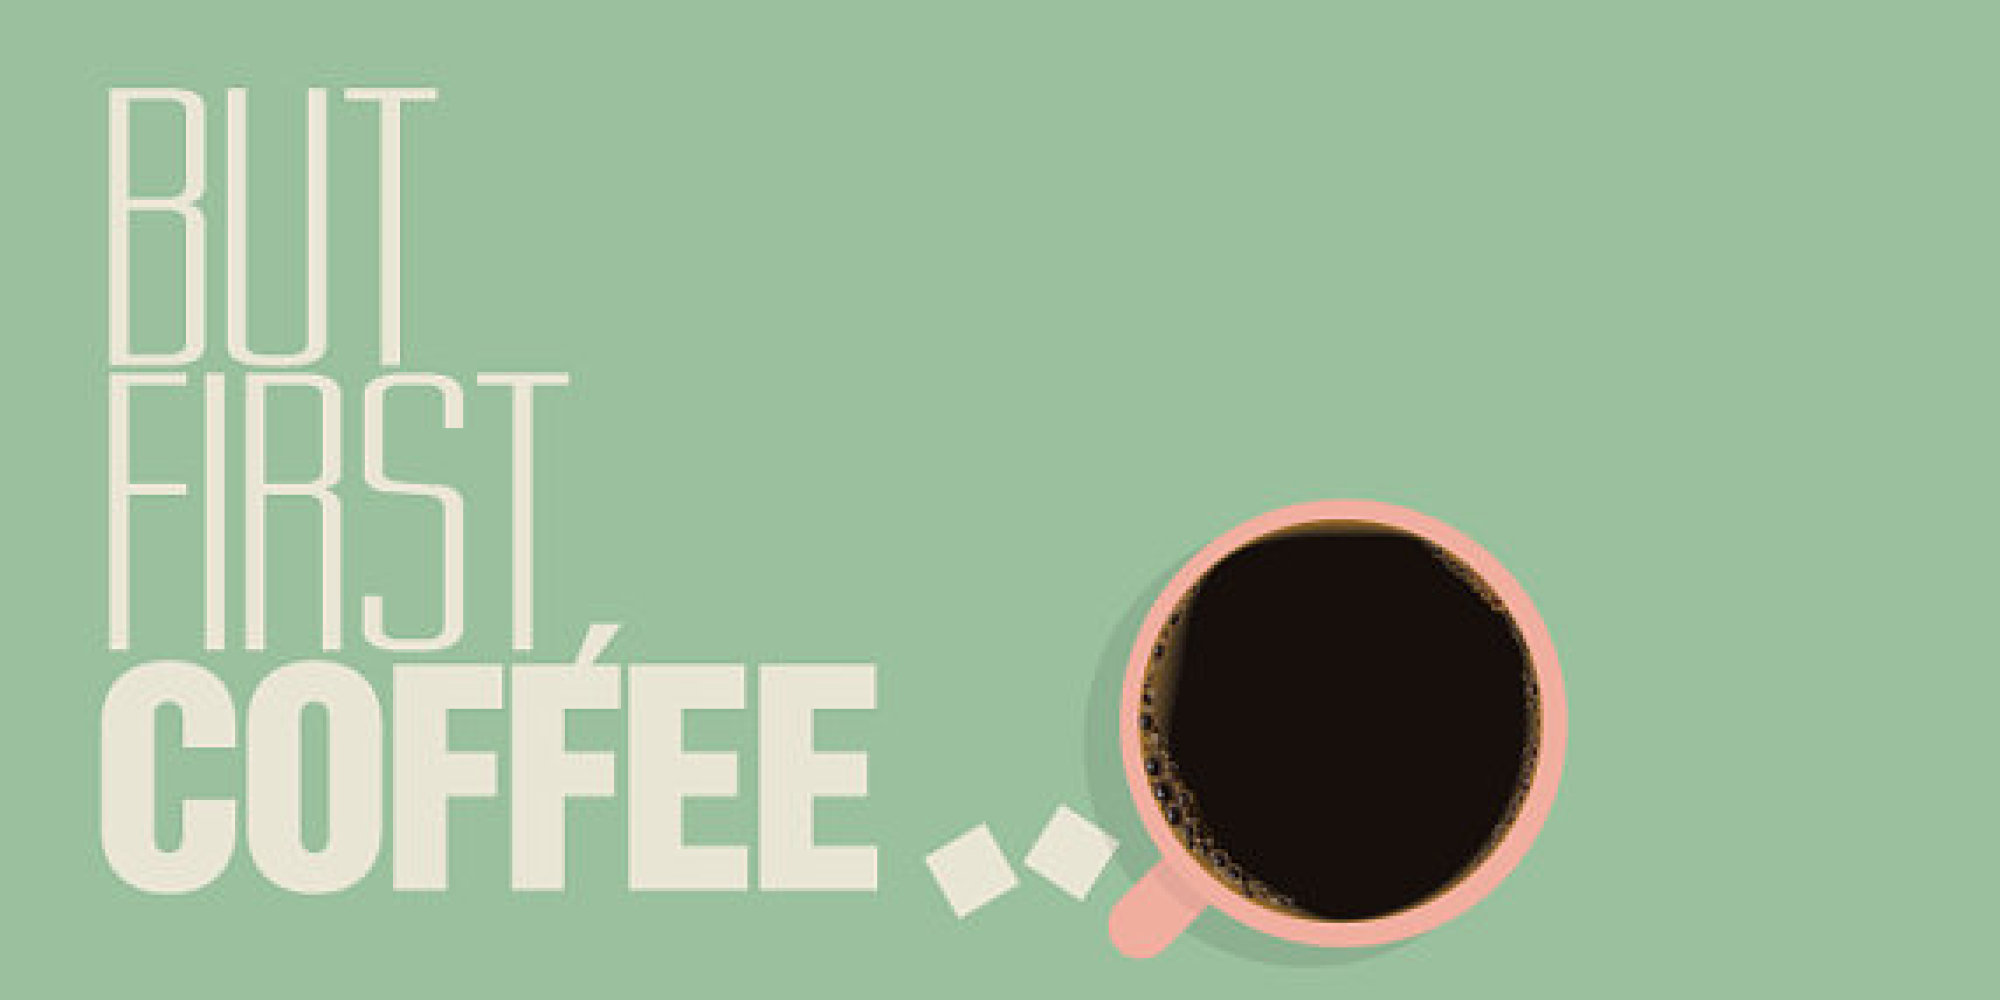 Coffee Quotes: 10 Quotes That Capture How We Feel About Coffee